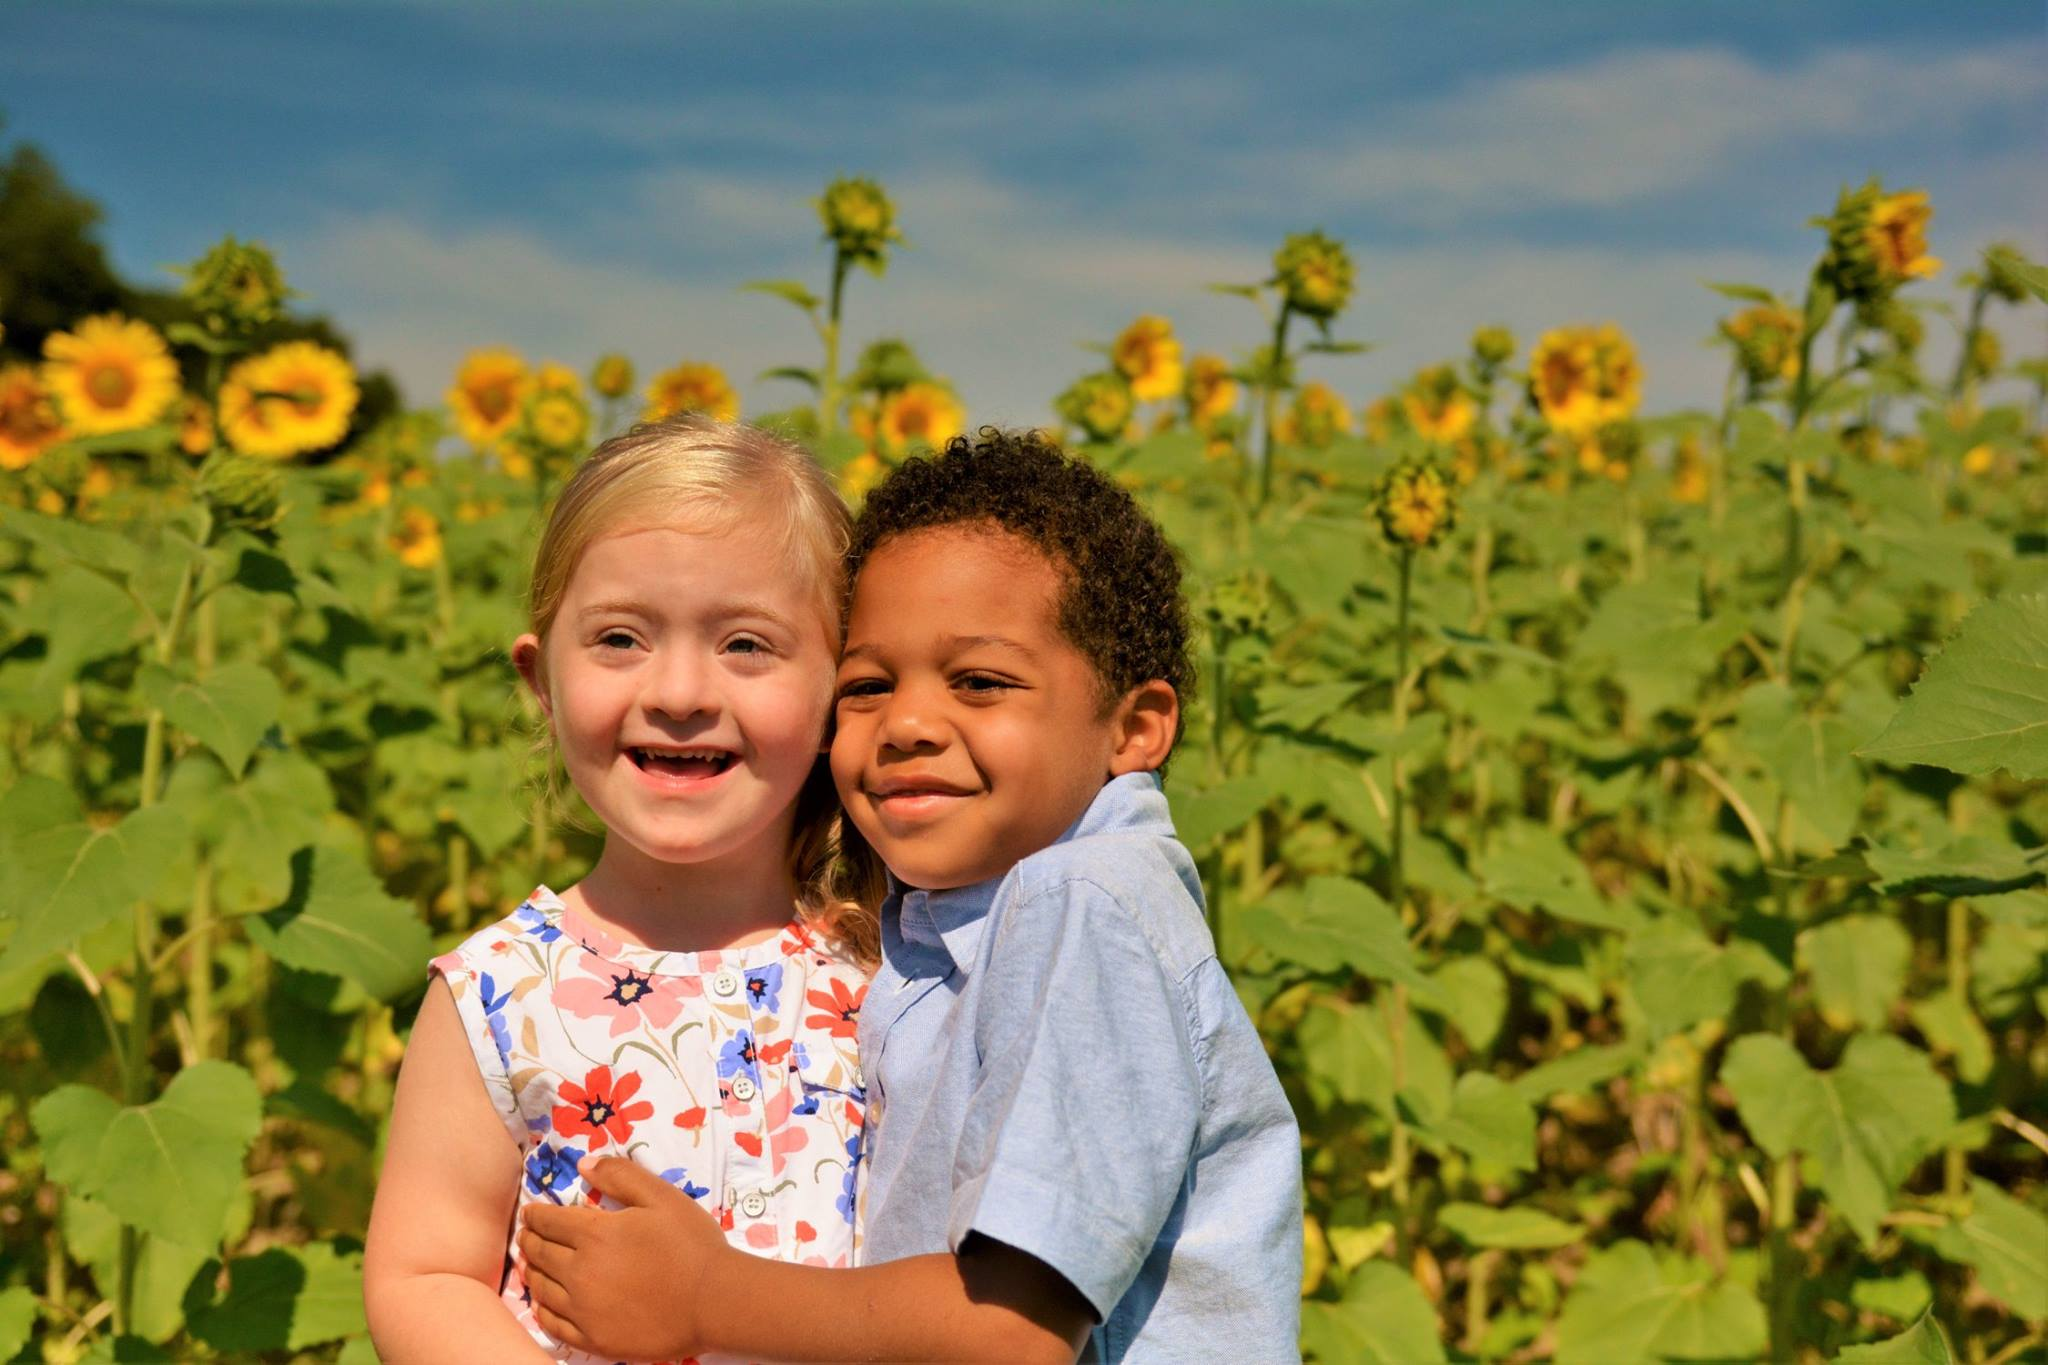 A girl with a developmental disability and her brother in front of a field of sunflowers.